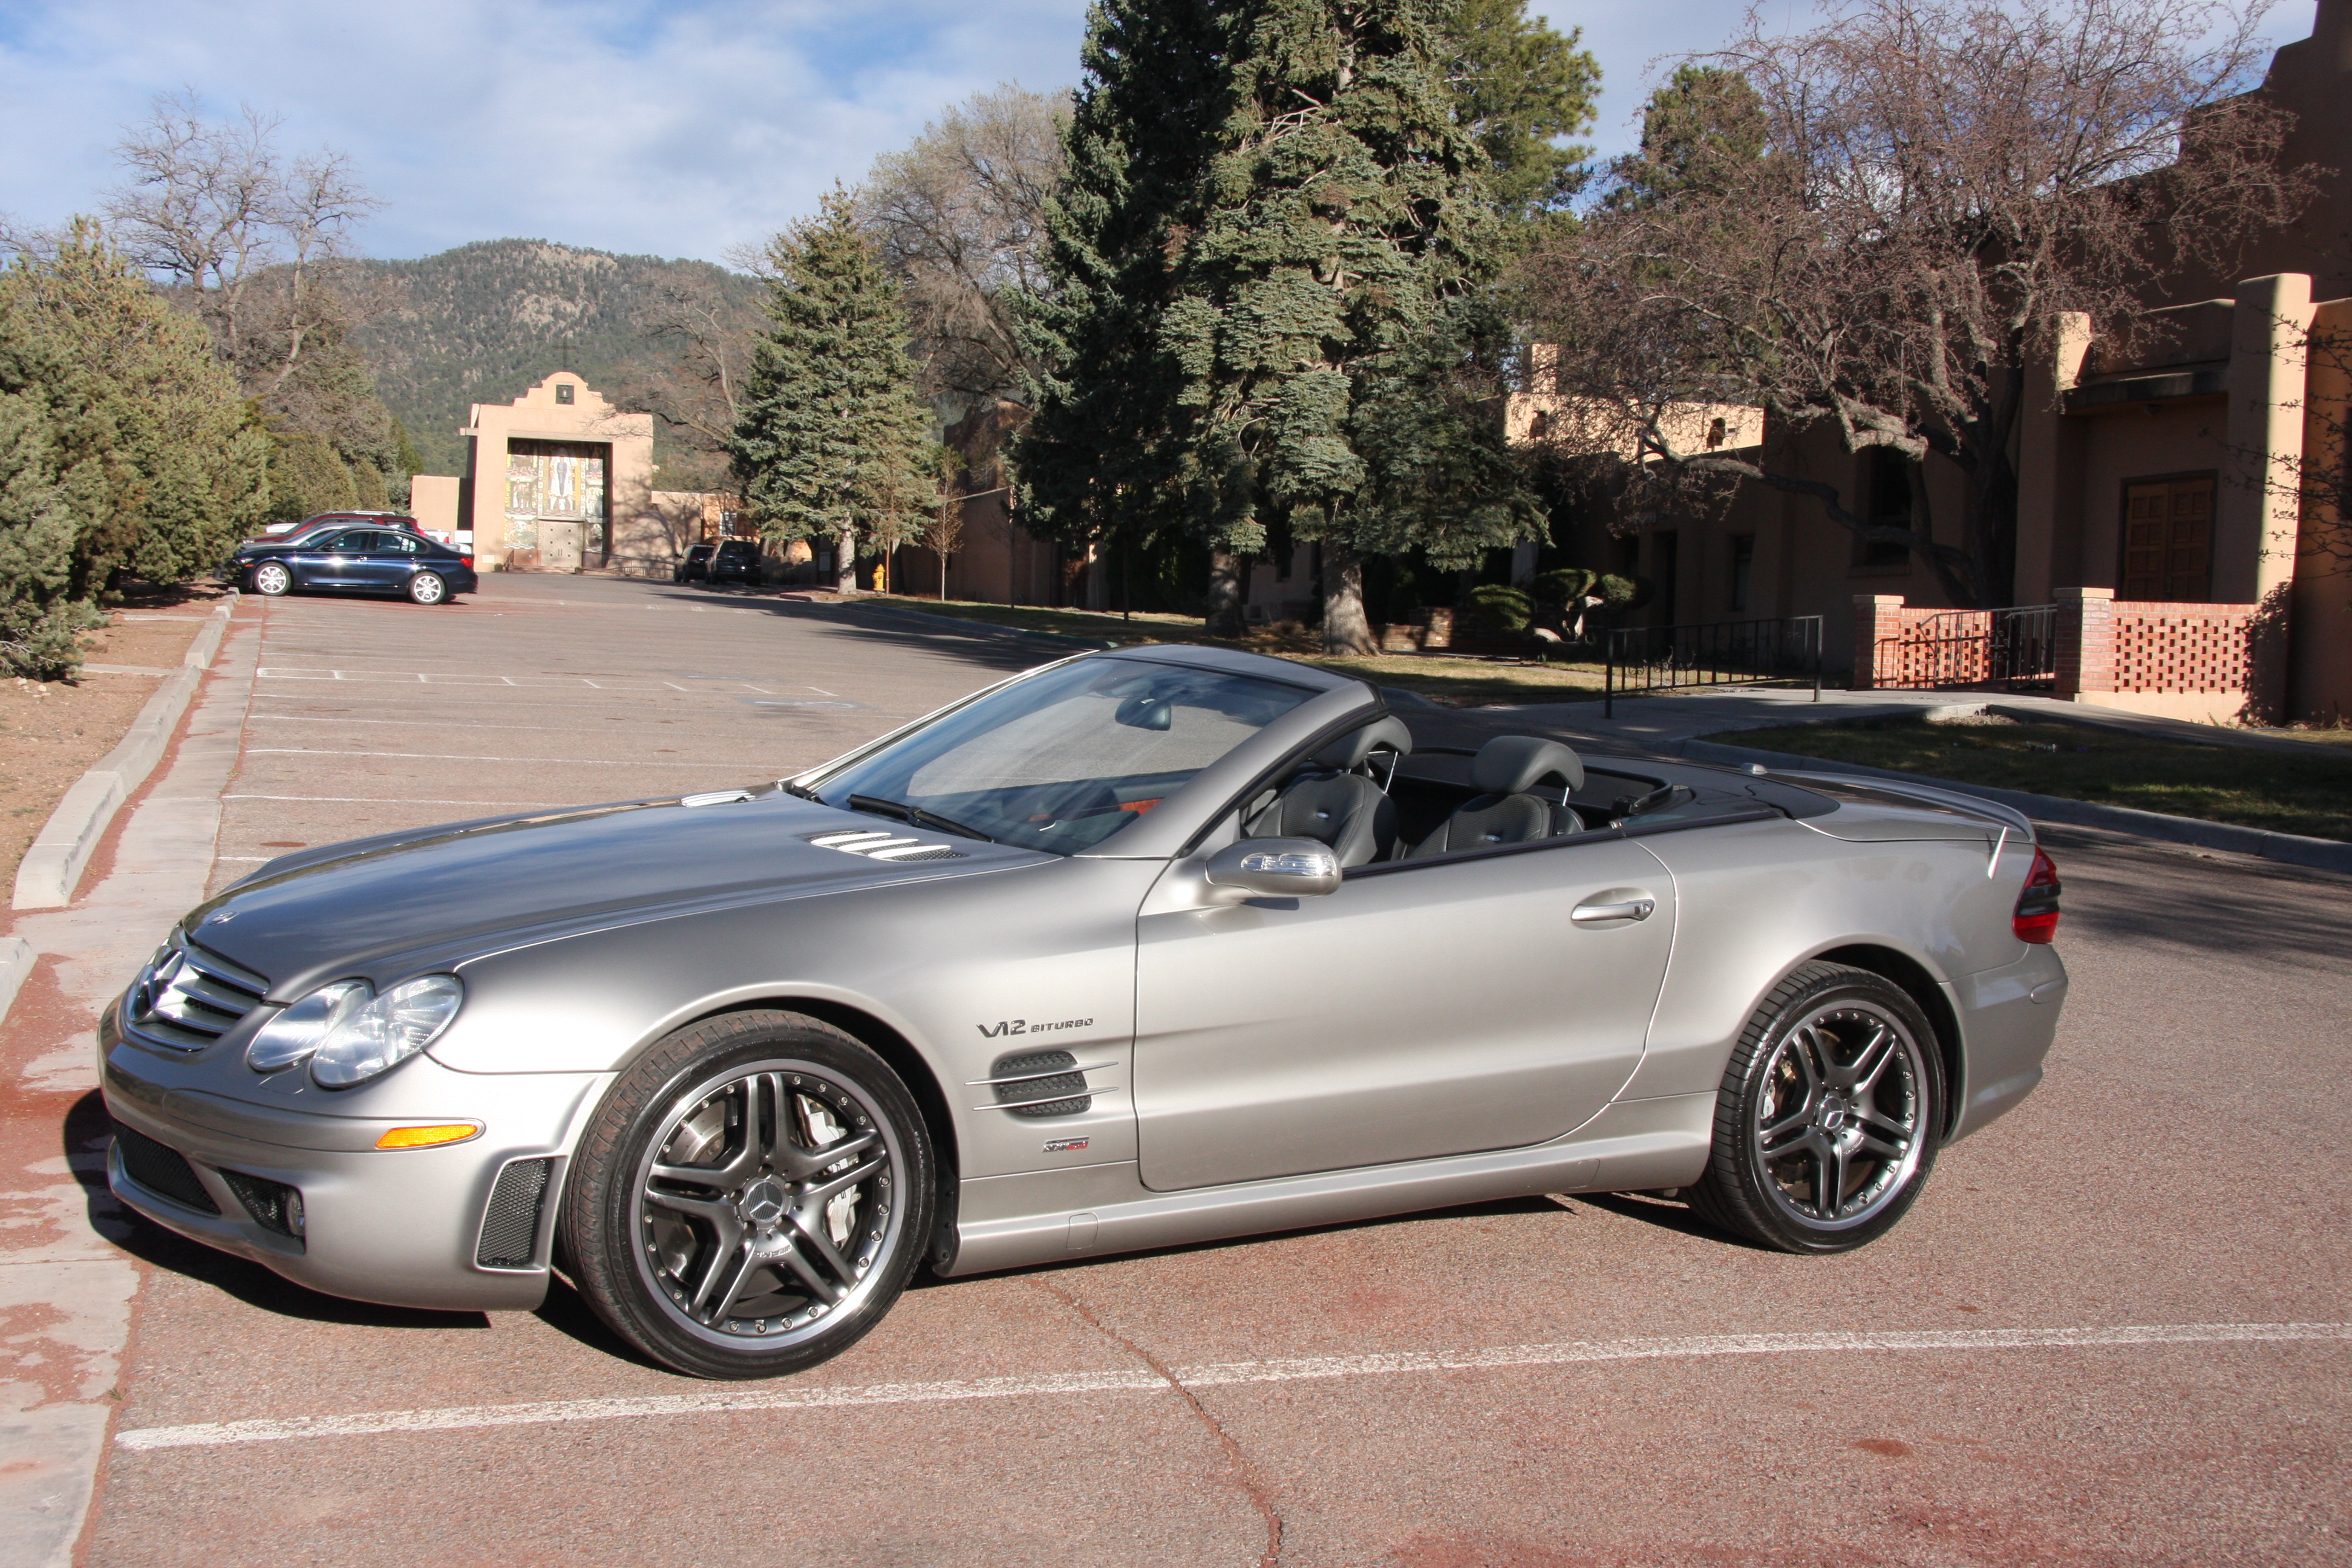 2006 mercedes sl65 amg with renntech tune jim hailey 39 s classic cars. Black Bedroom Furniture Sets. Home Design Ideas